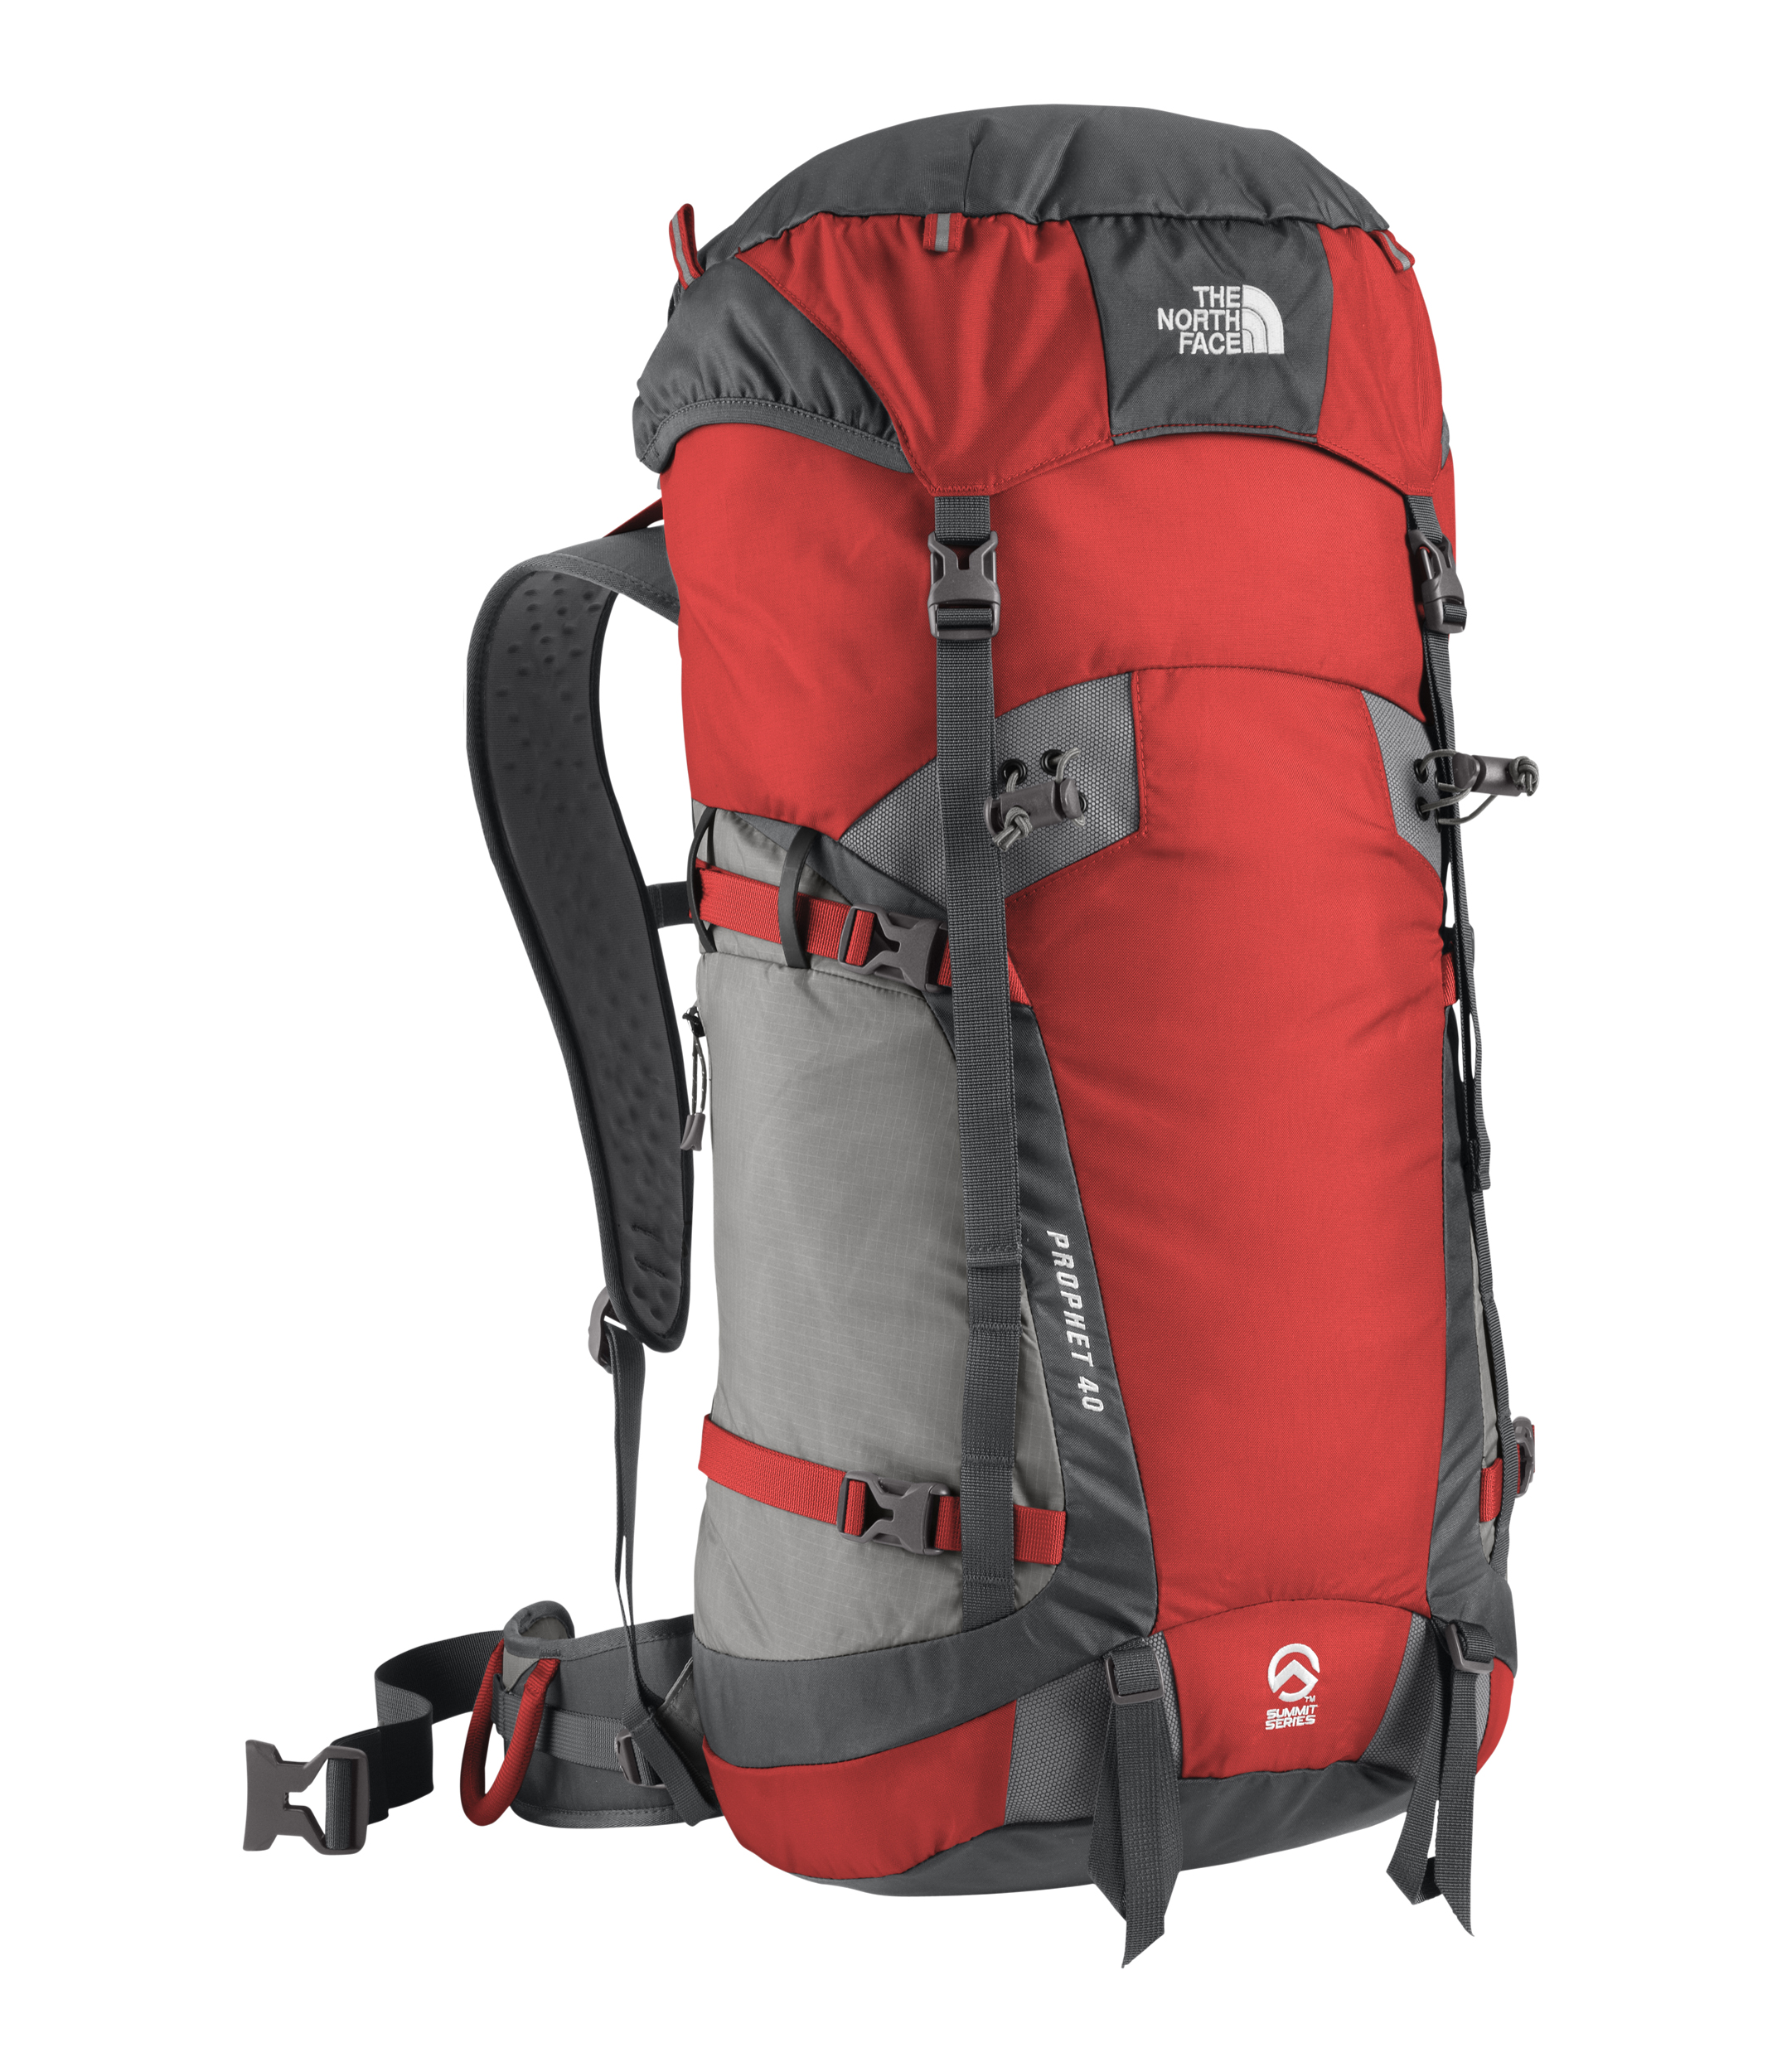 The North Face Prophet 40 Climbing Gear Review